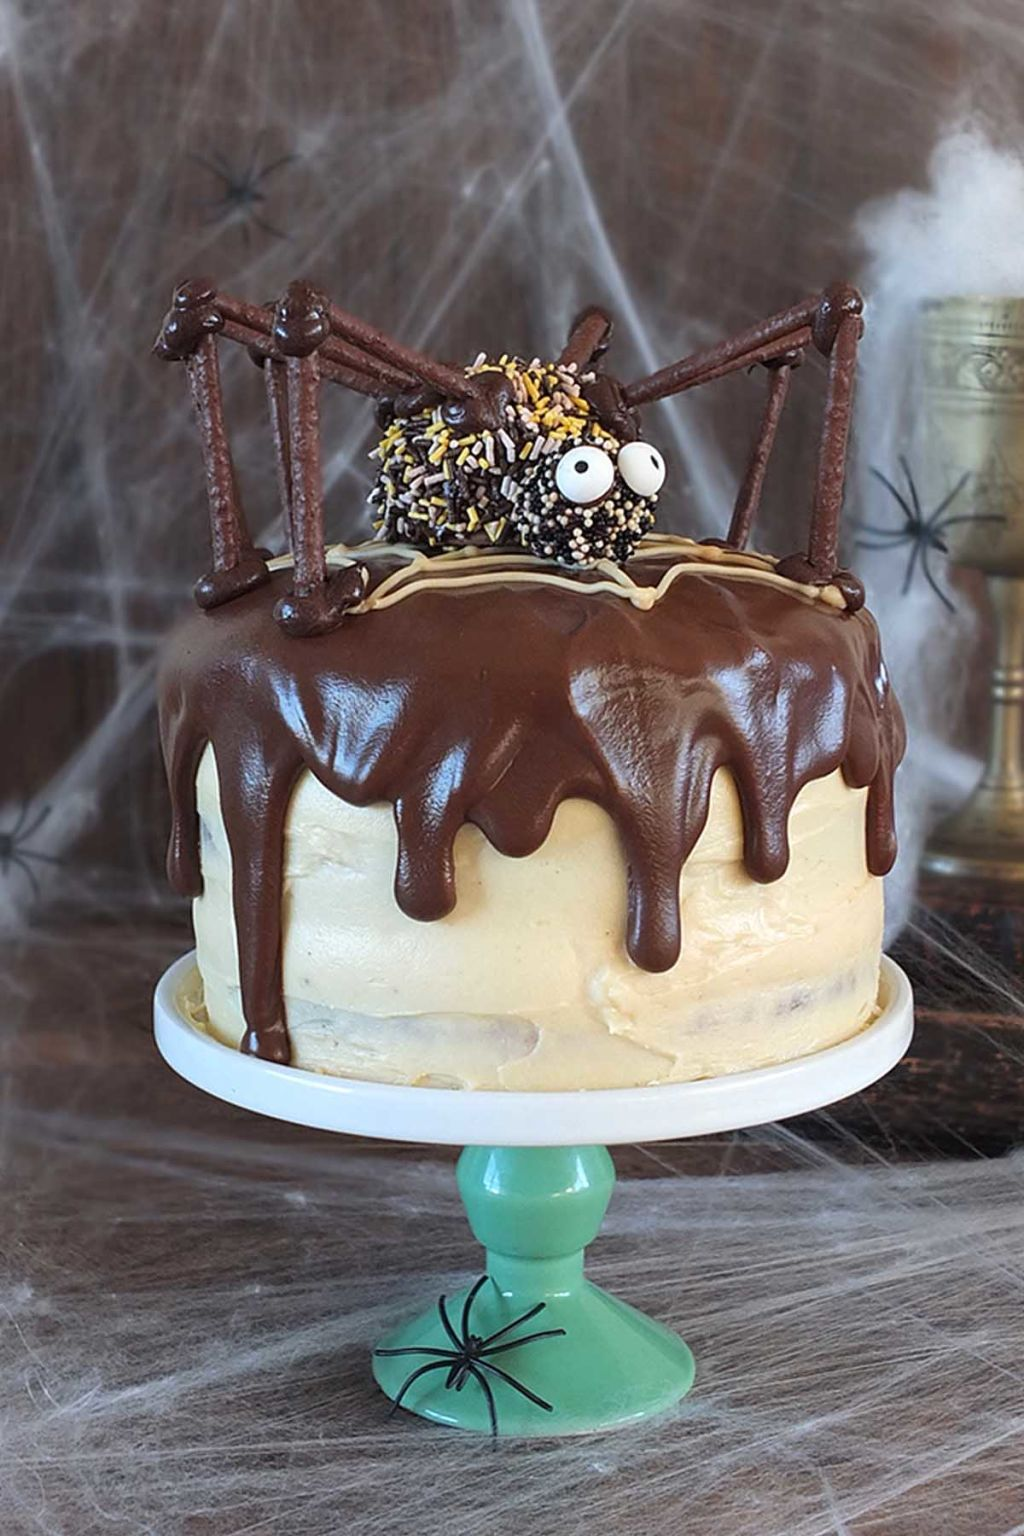 30+ Halloween Cakes That Are So Creepy They\u0027ll Double as Decor - Halloween Cake Decorating Ideas